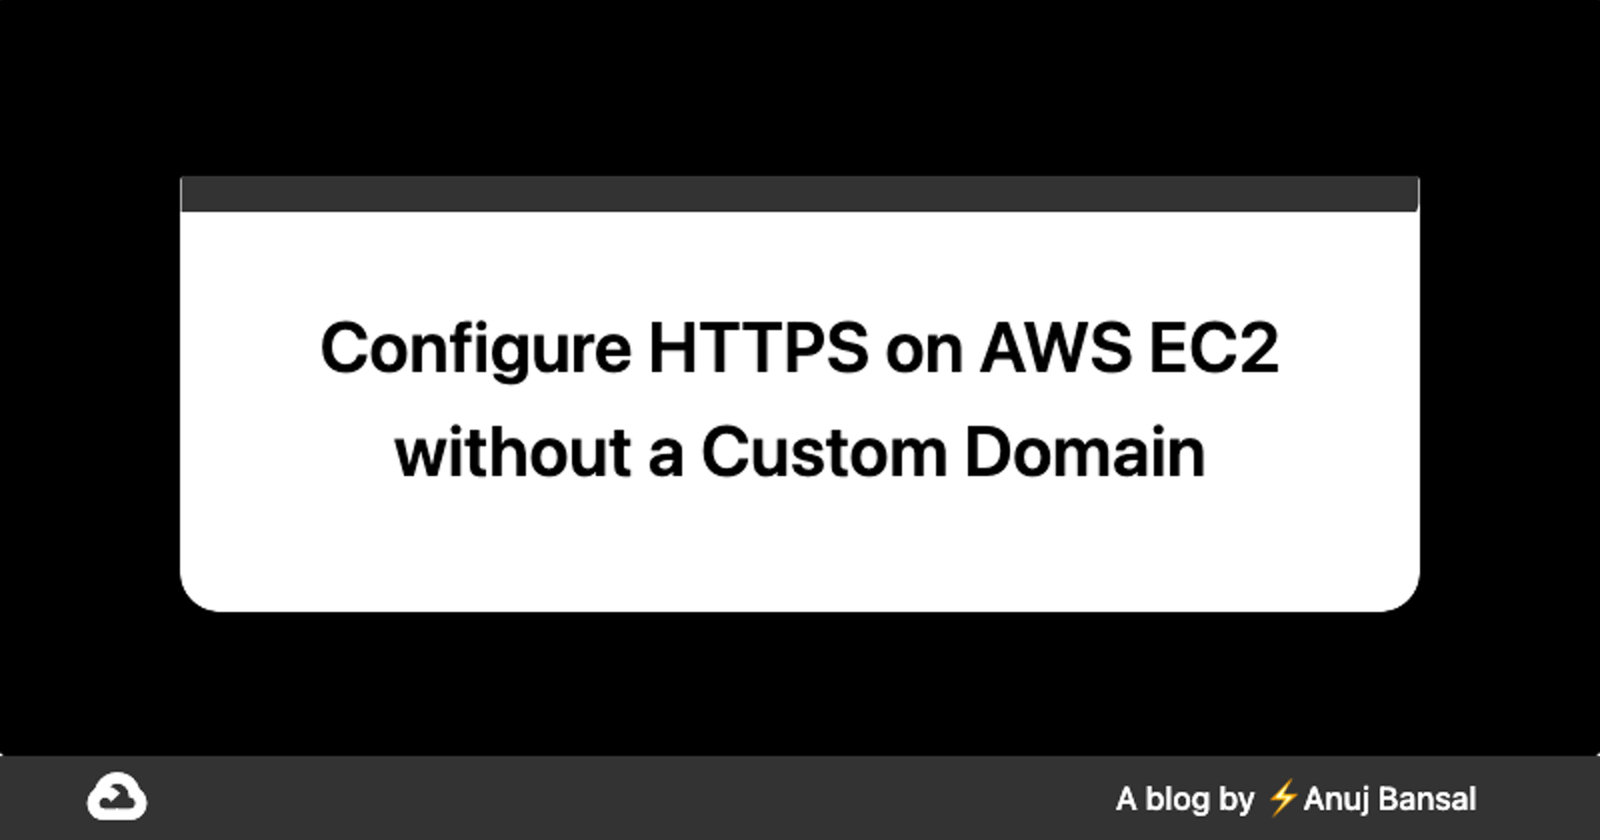 Configure HTTPS on AWS EC2 without a Custom Domain